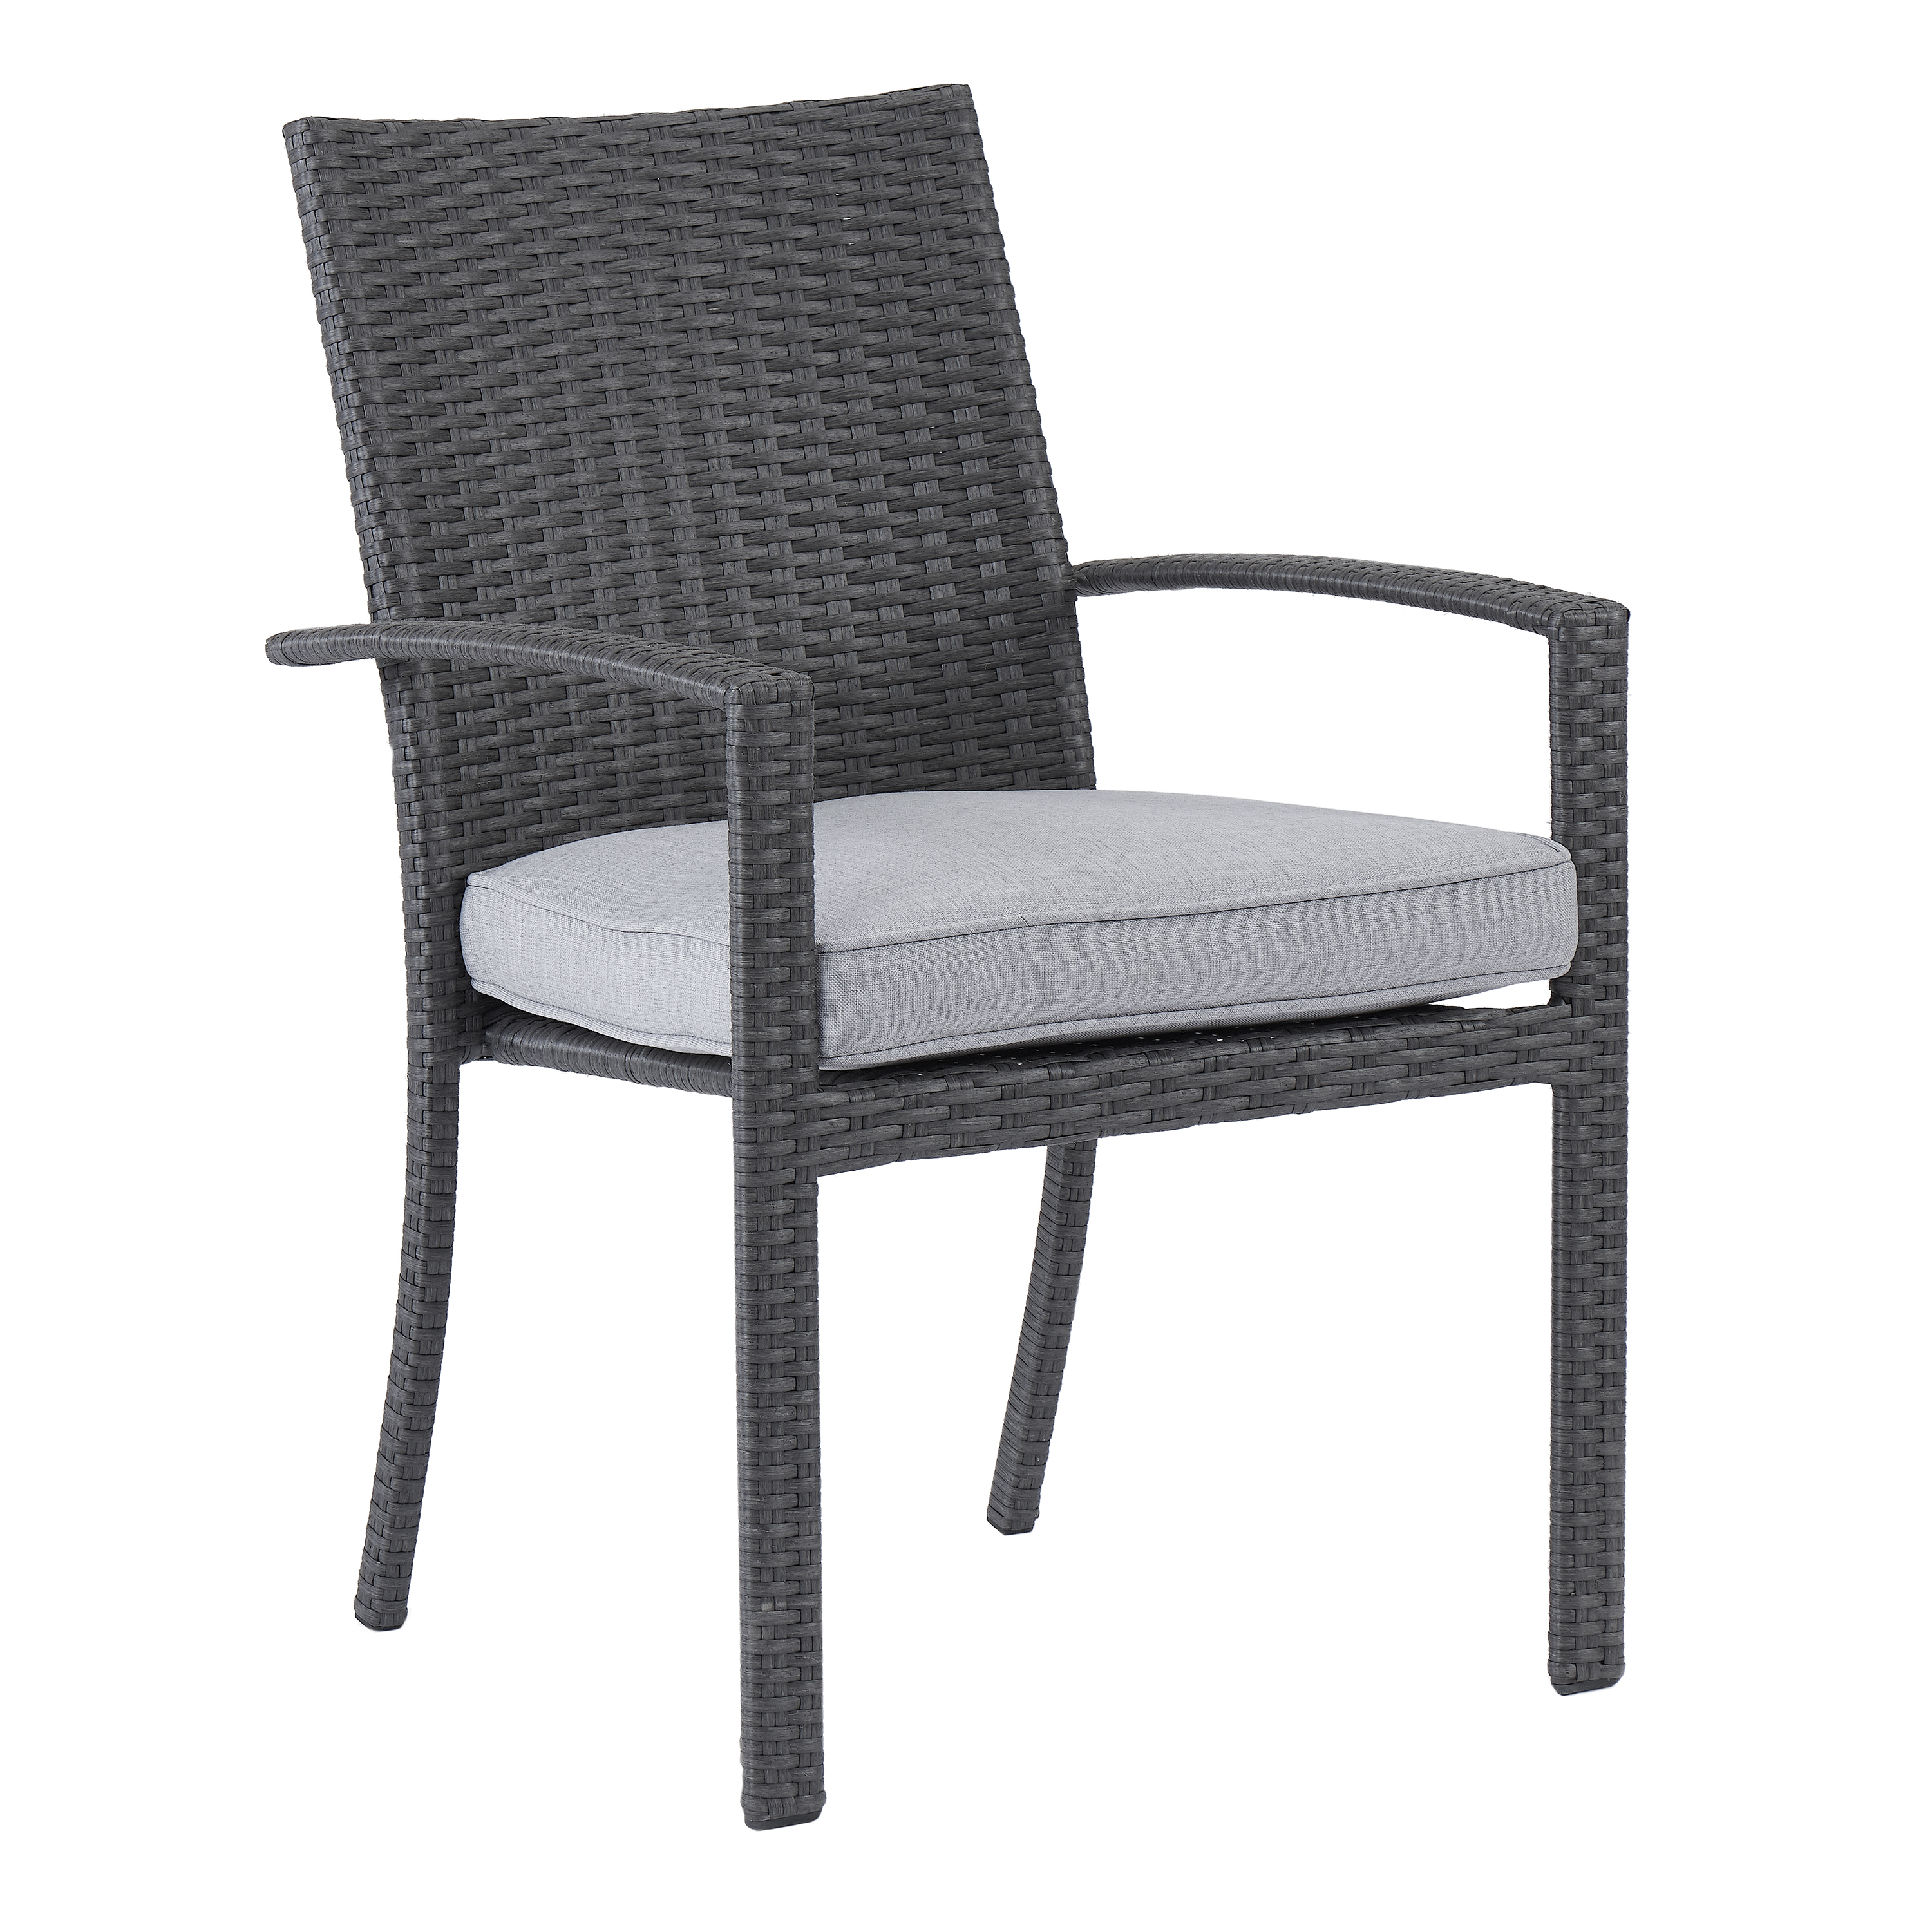 Better Homes & Gardens Long Ridge 2-Piece Patio Wicker Dining Chairs Set with Gray Cushions